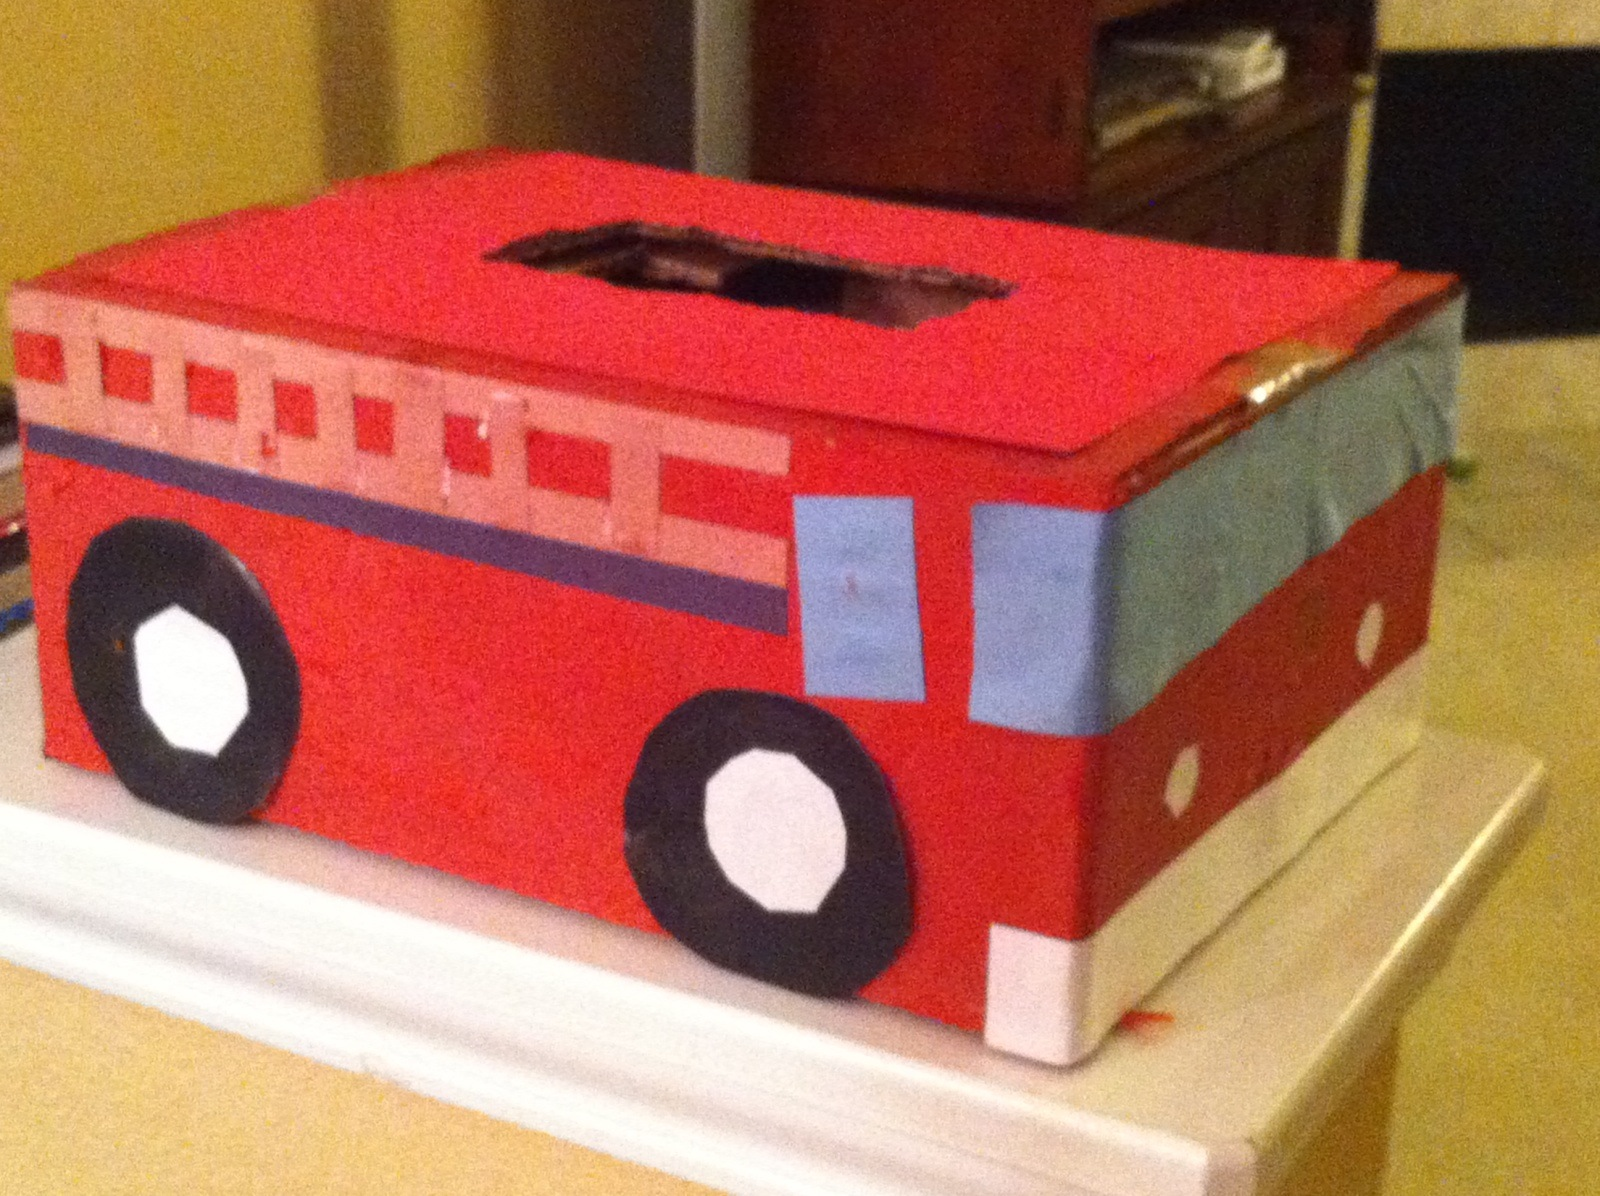 Andrew Read And Followed The Directions To Make This Fire Truck Valentine  Box. The Original Instructions Were For A Fire Truck Toy Box, But He  Adapted It By ...